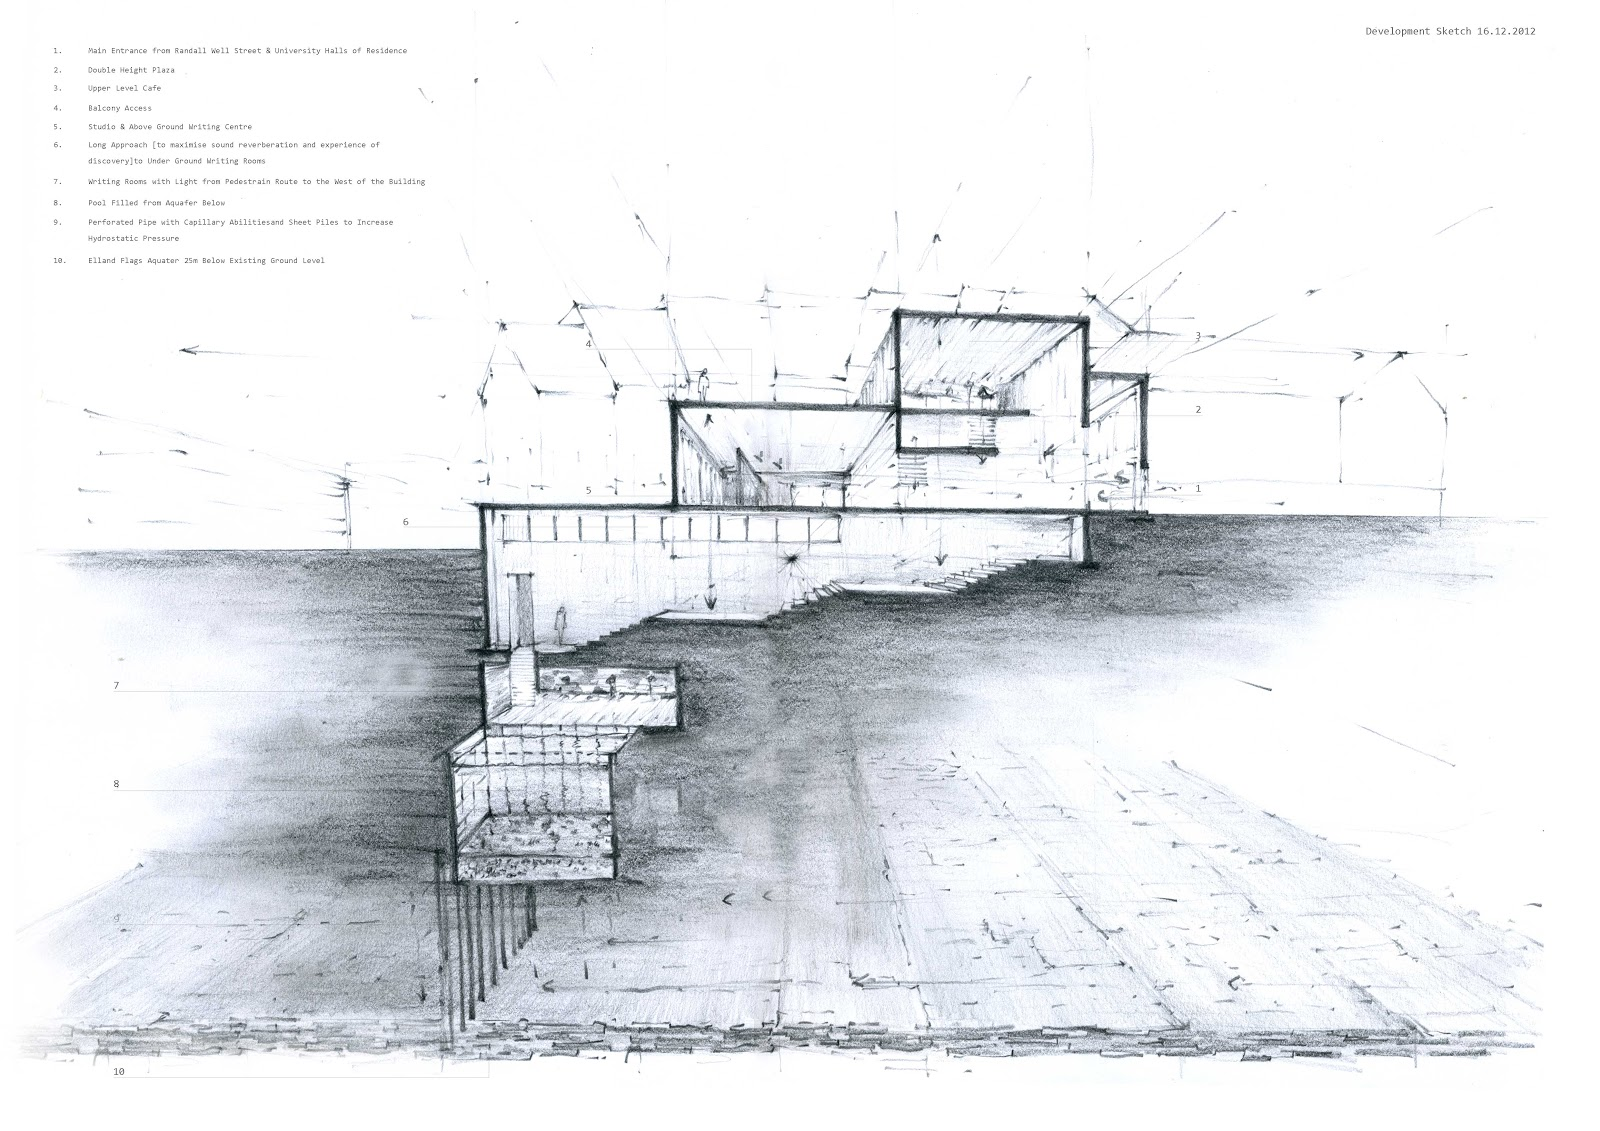 221391 as well 214218 likewise Aspen Valley Ranch further Tiny House Des Maisons Sublimes Et Ecologiques La Simplicite Par Excellence further Collider Activity Center Rethinks The Necessity Of A Building As A Neutral Container. on architectural concept house